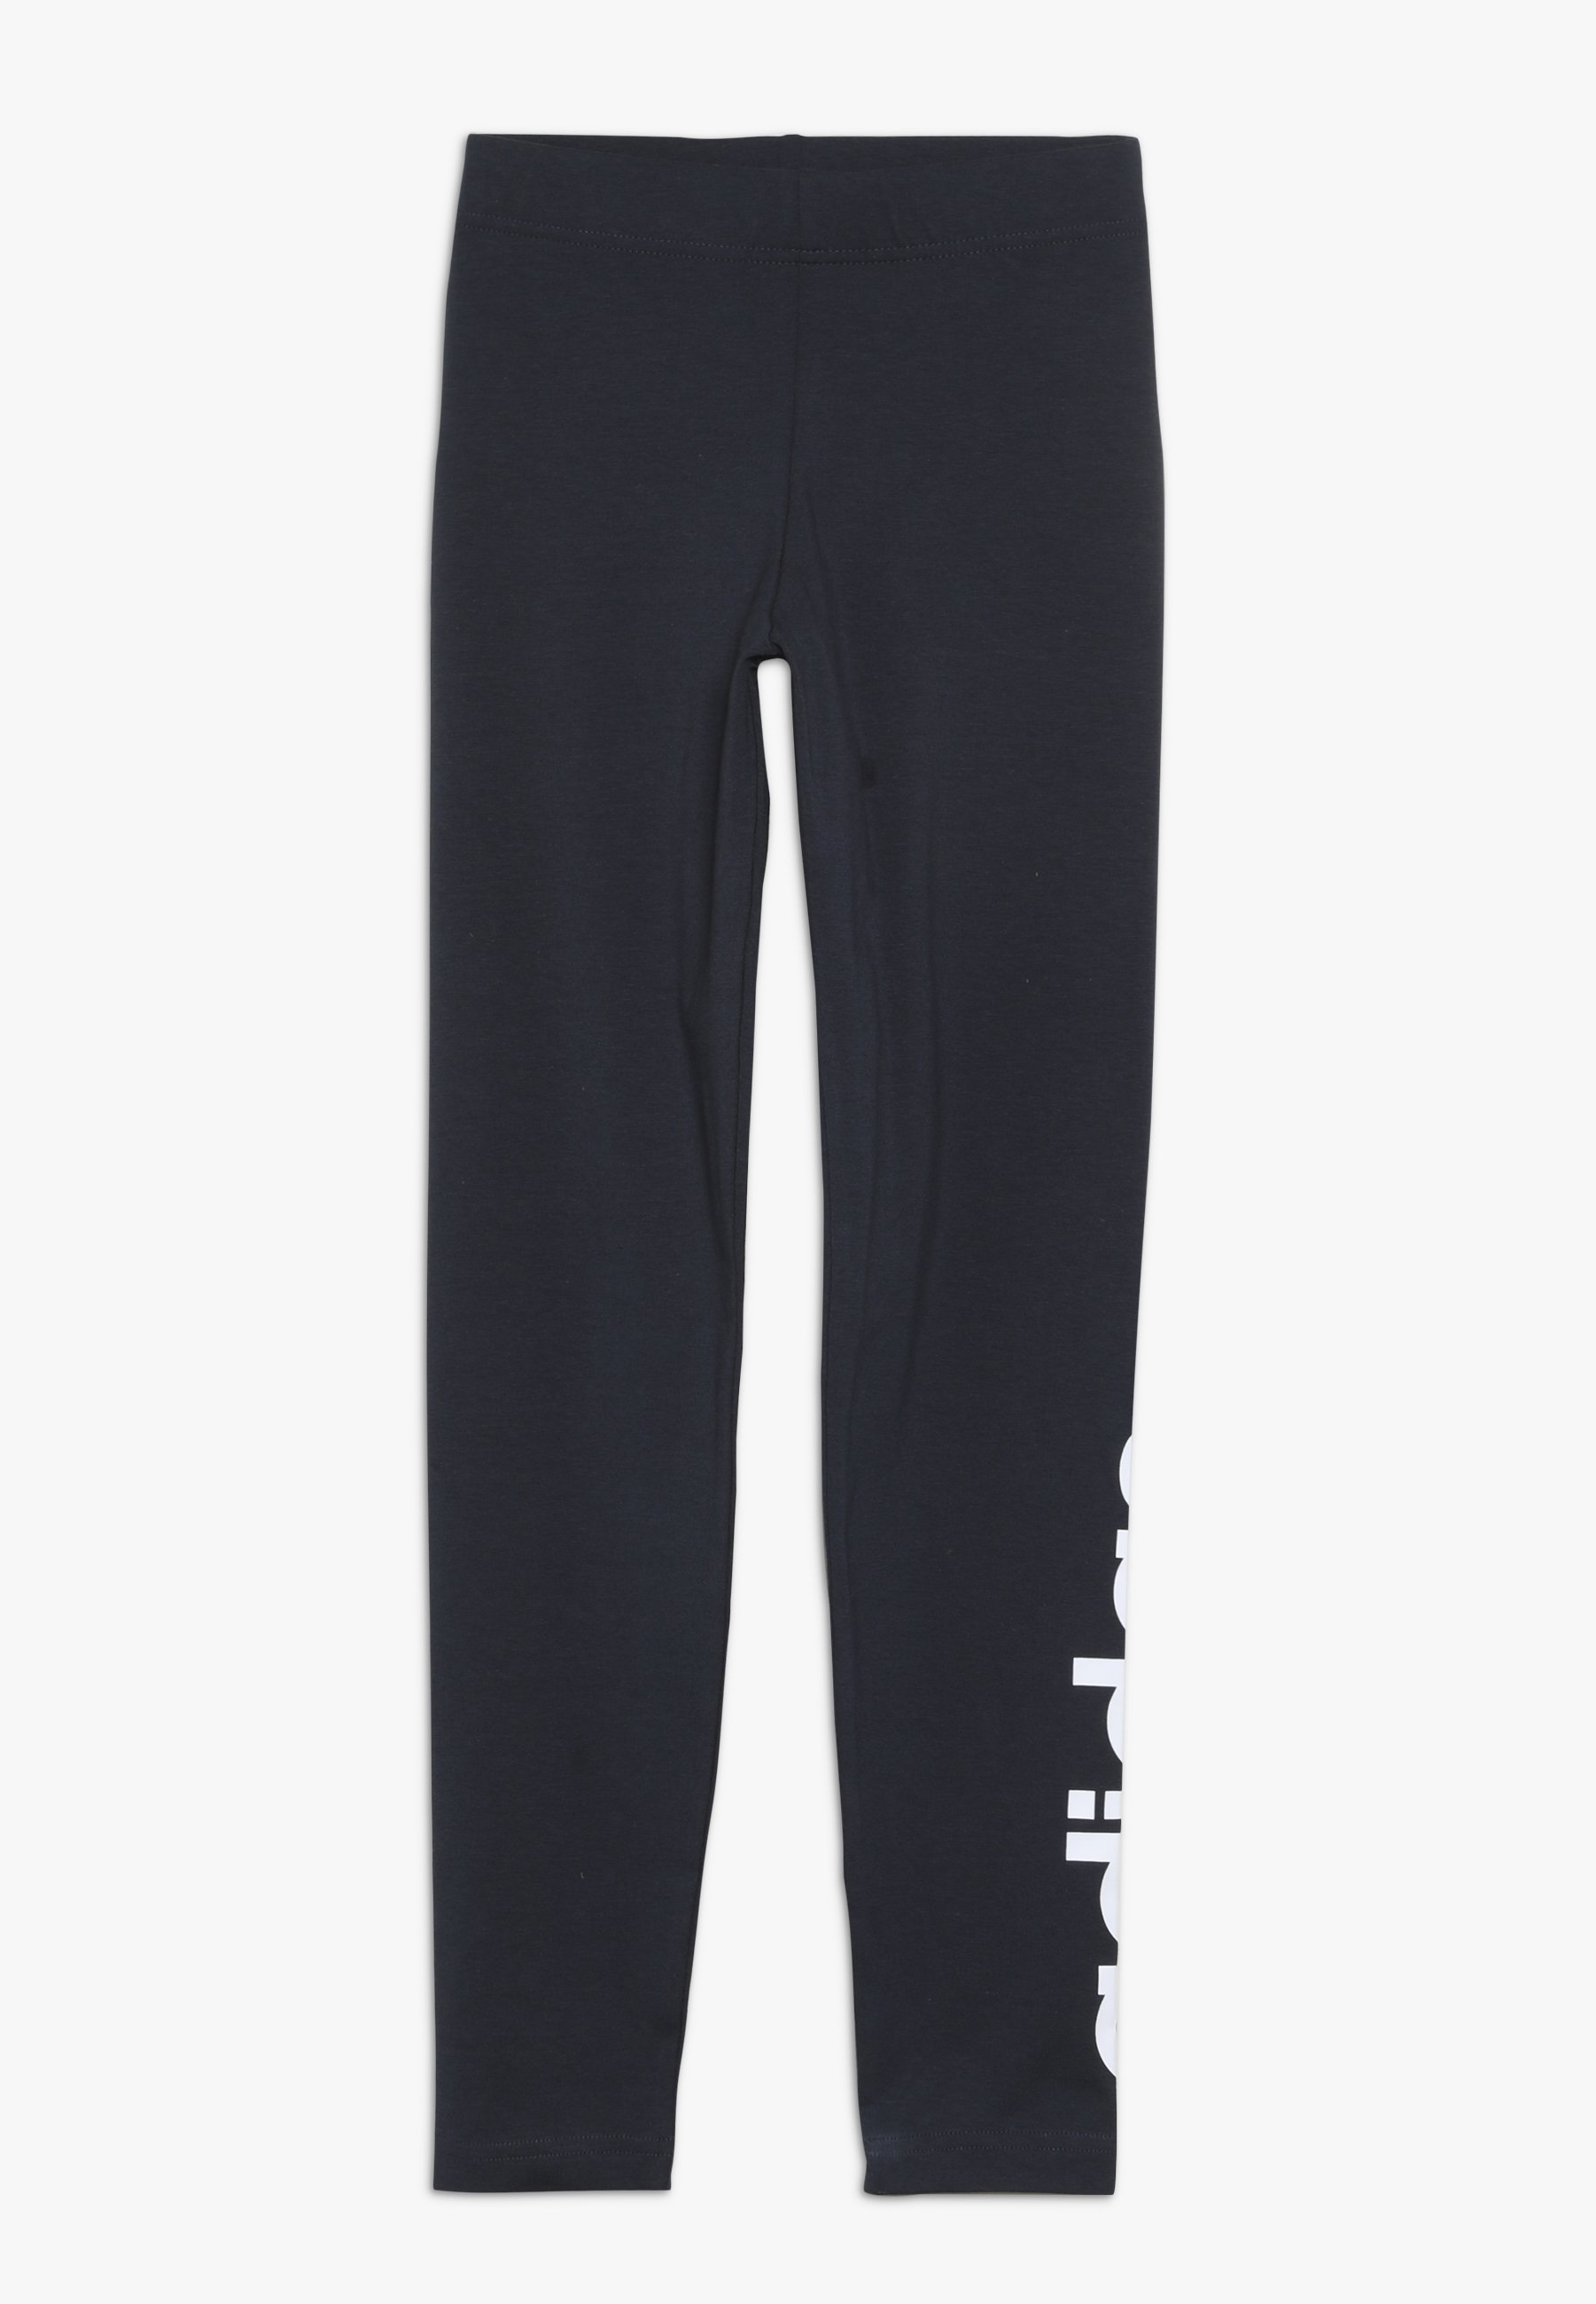 adidas Performance Tights - legend ink/white